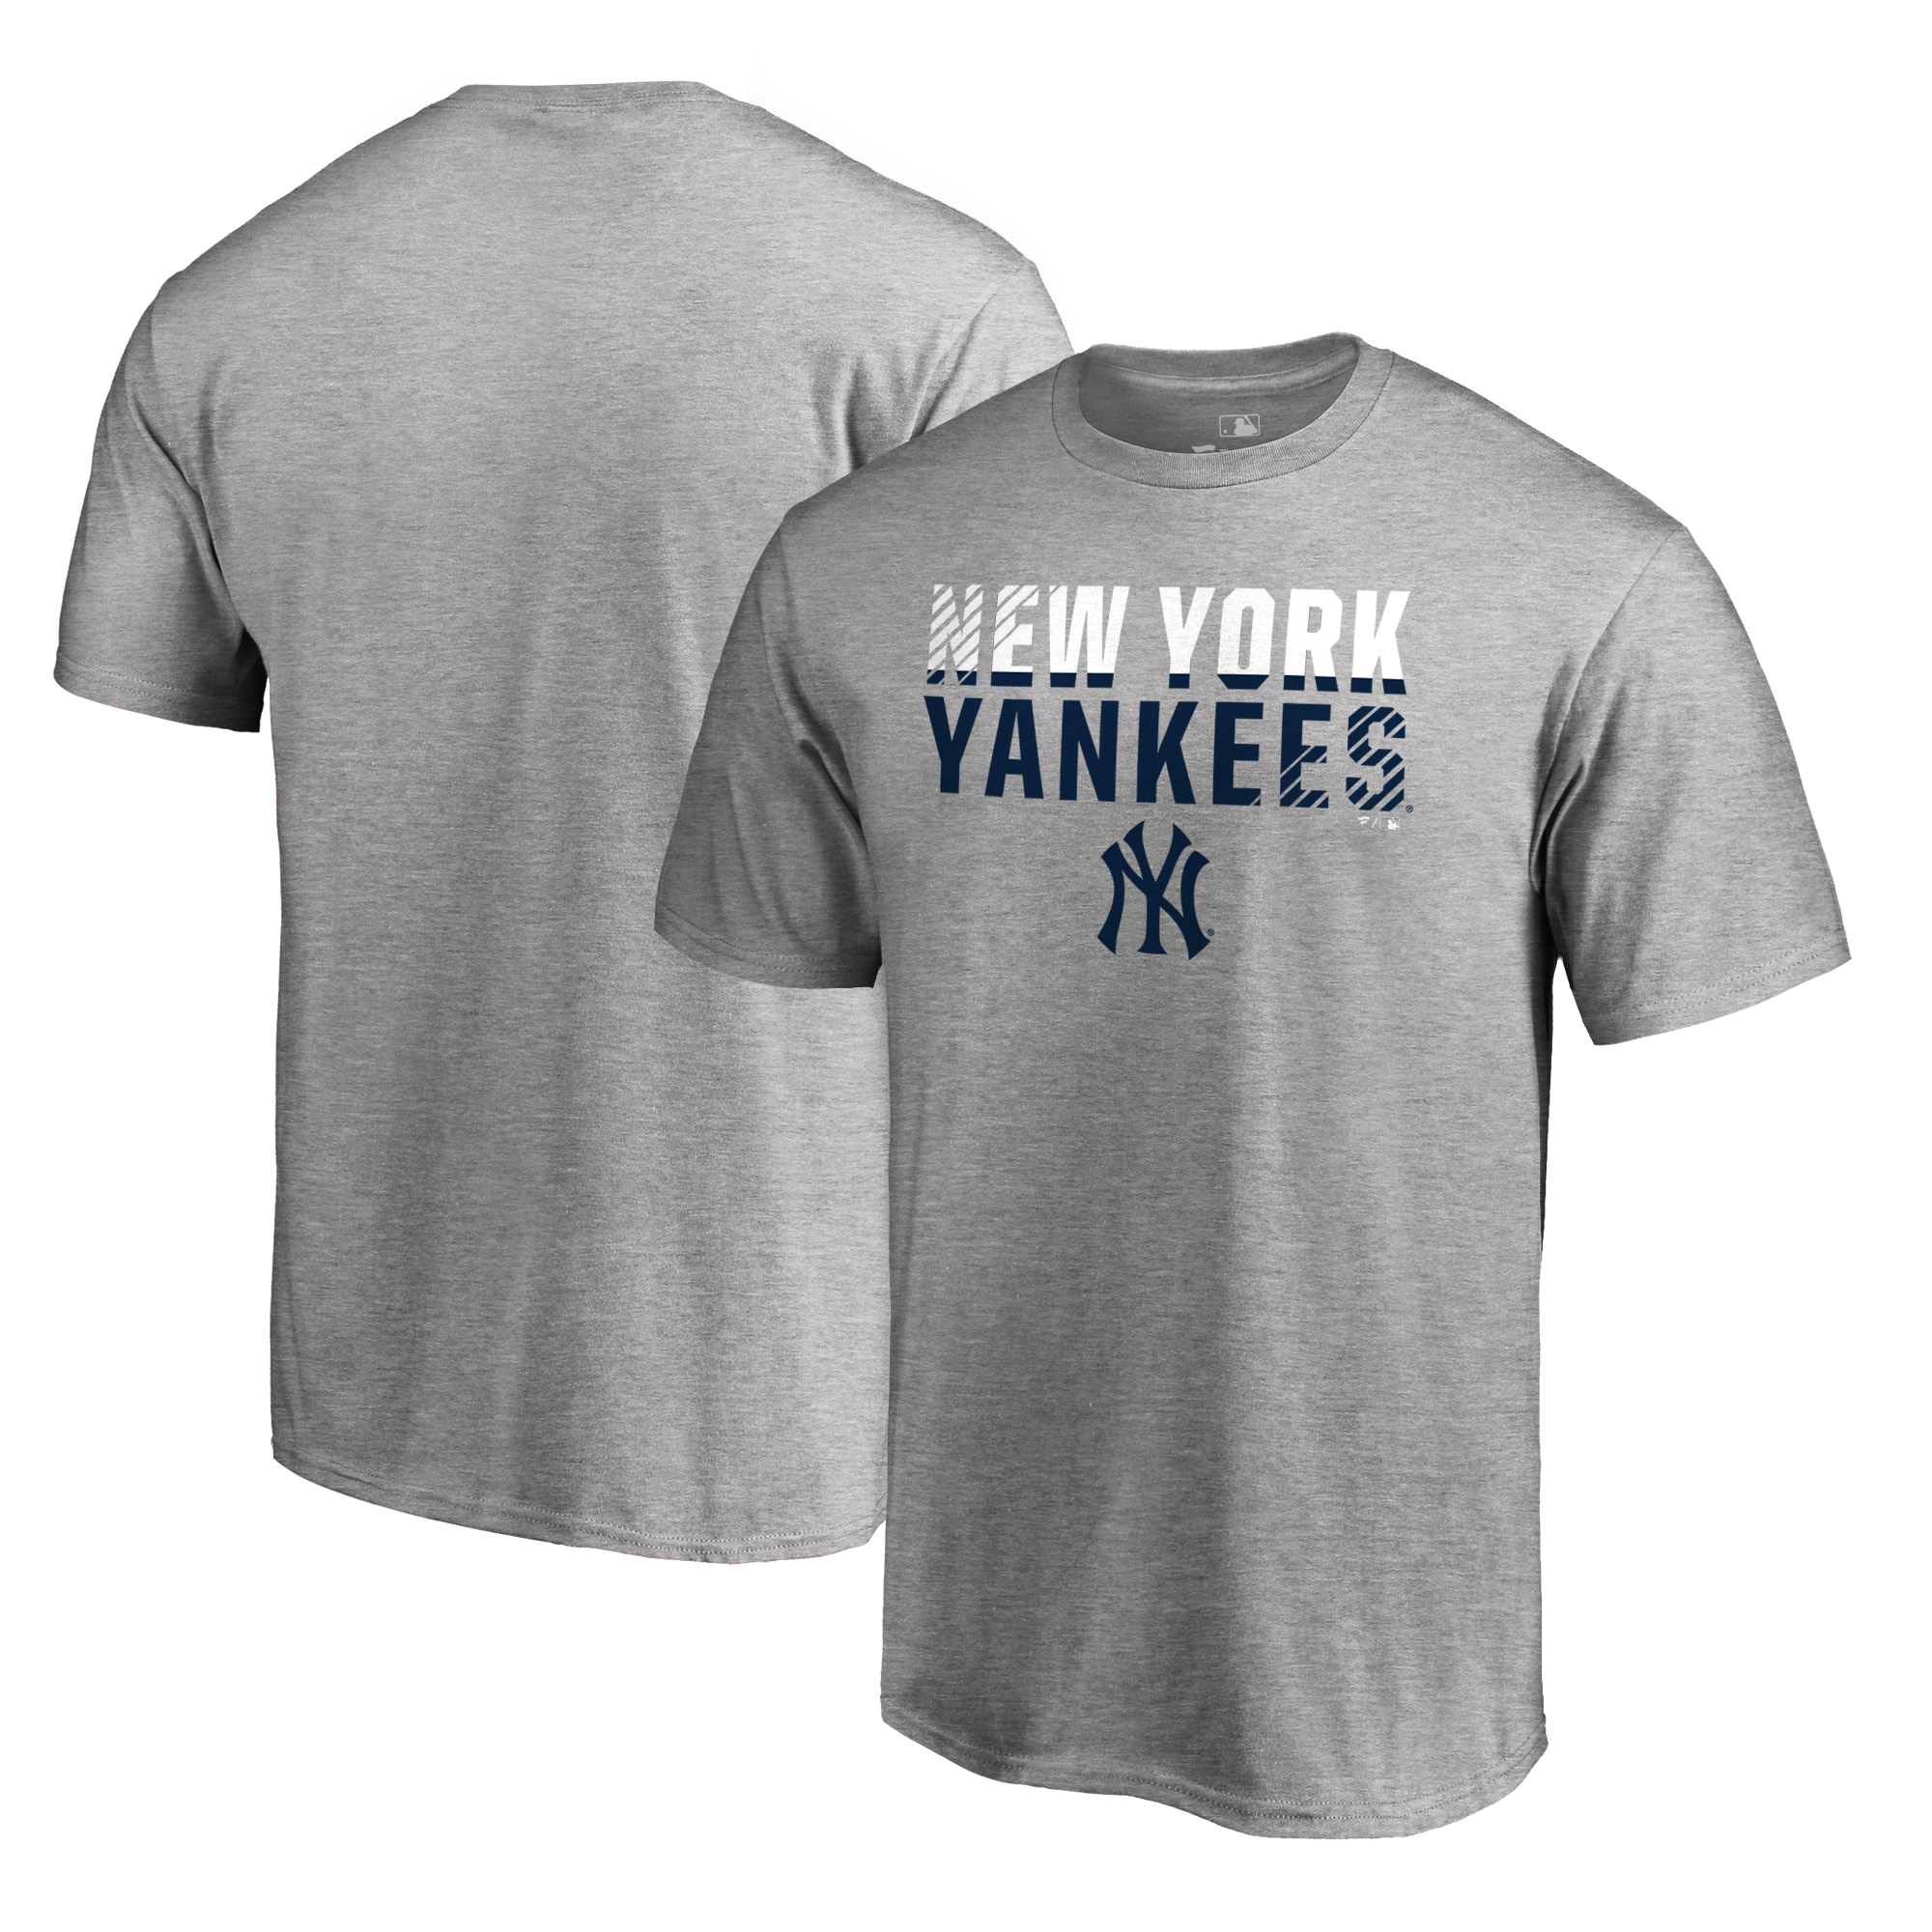 New York Yankees Fanatics Branded Big & Tall Fade Out T-Shirt - Heathered Gray